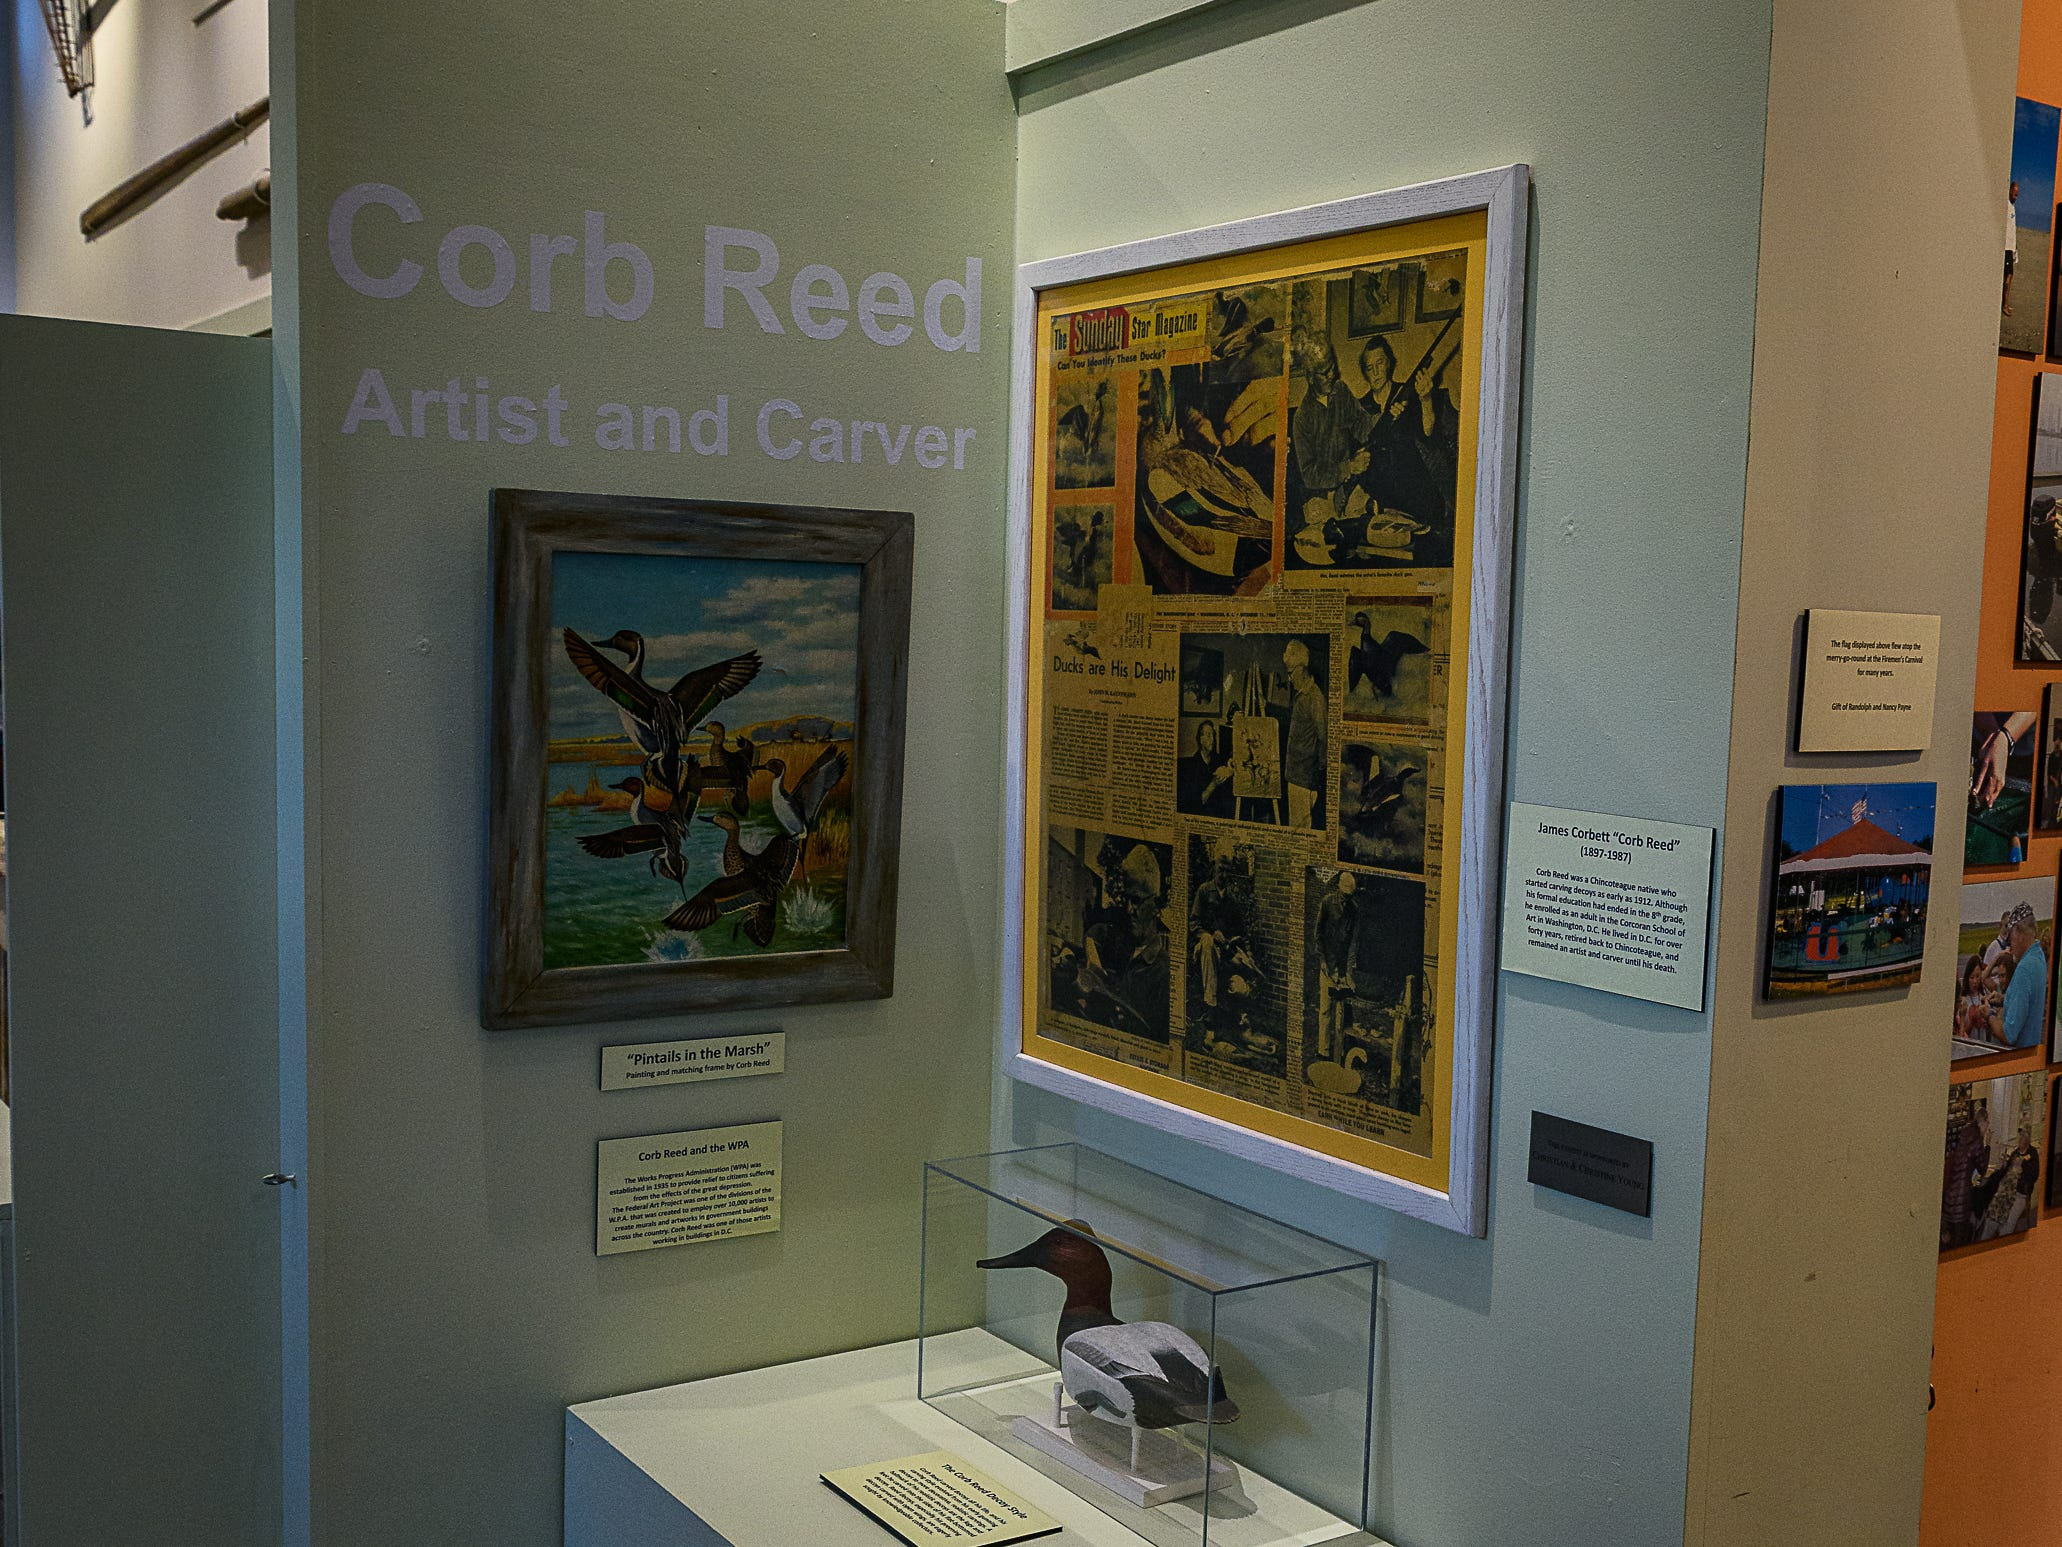 The new exhibit celebrating Corb Reed at Museum of Chincoteague.